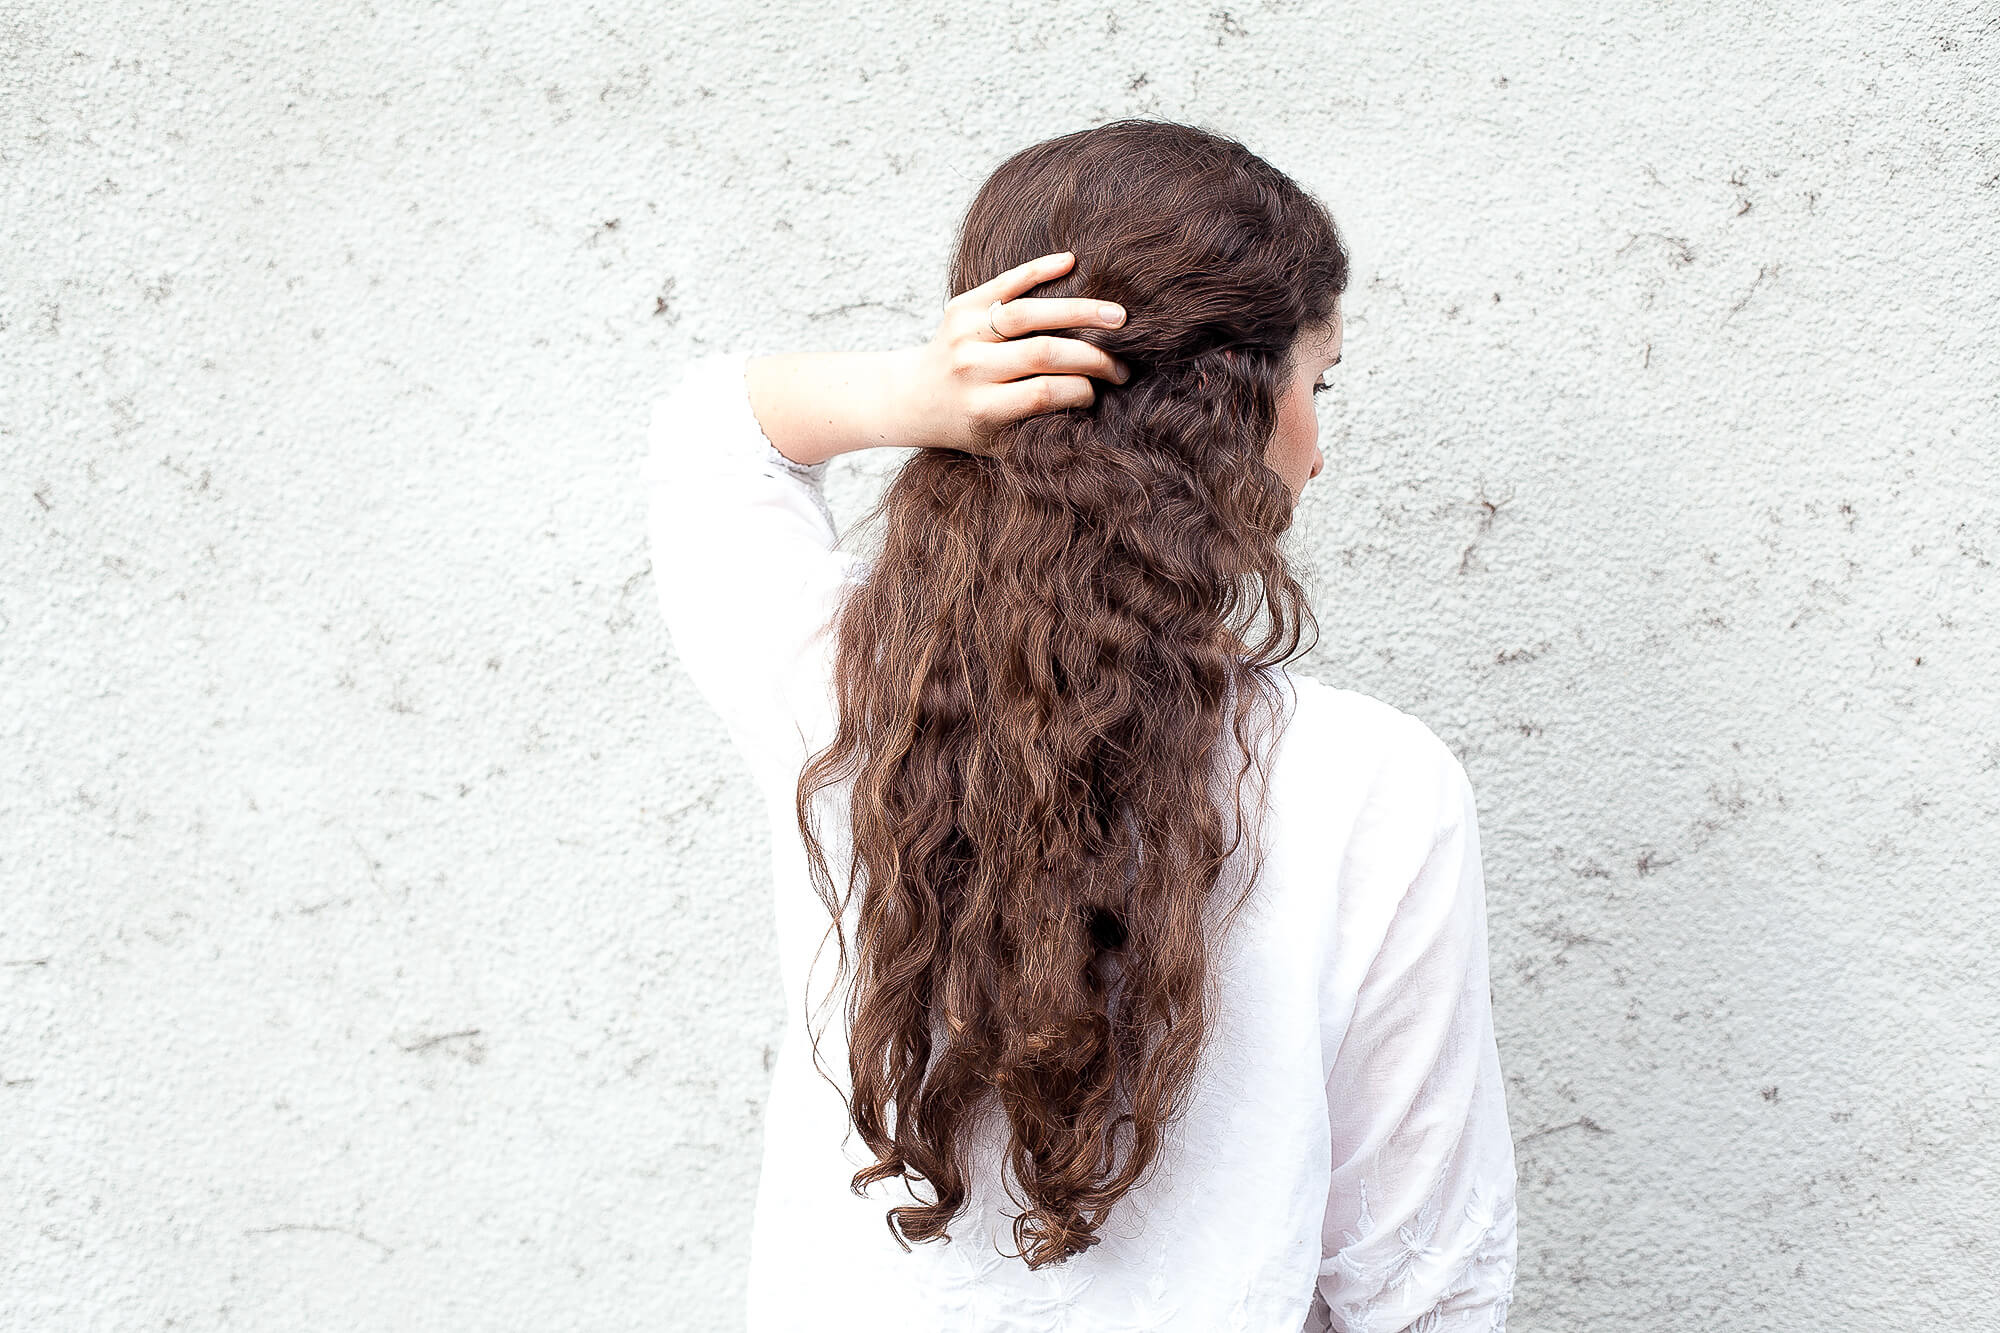 woman facing backwards with long dark curly hair